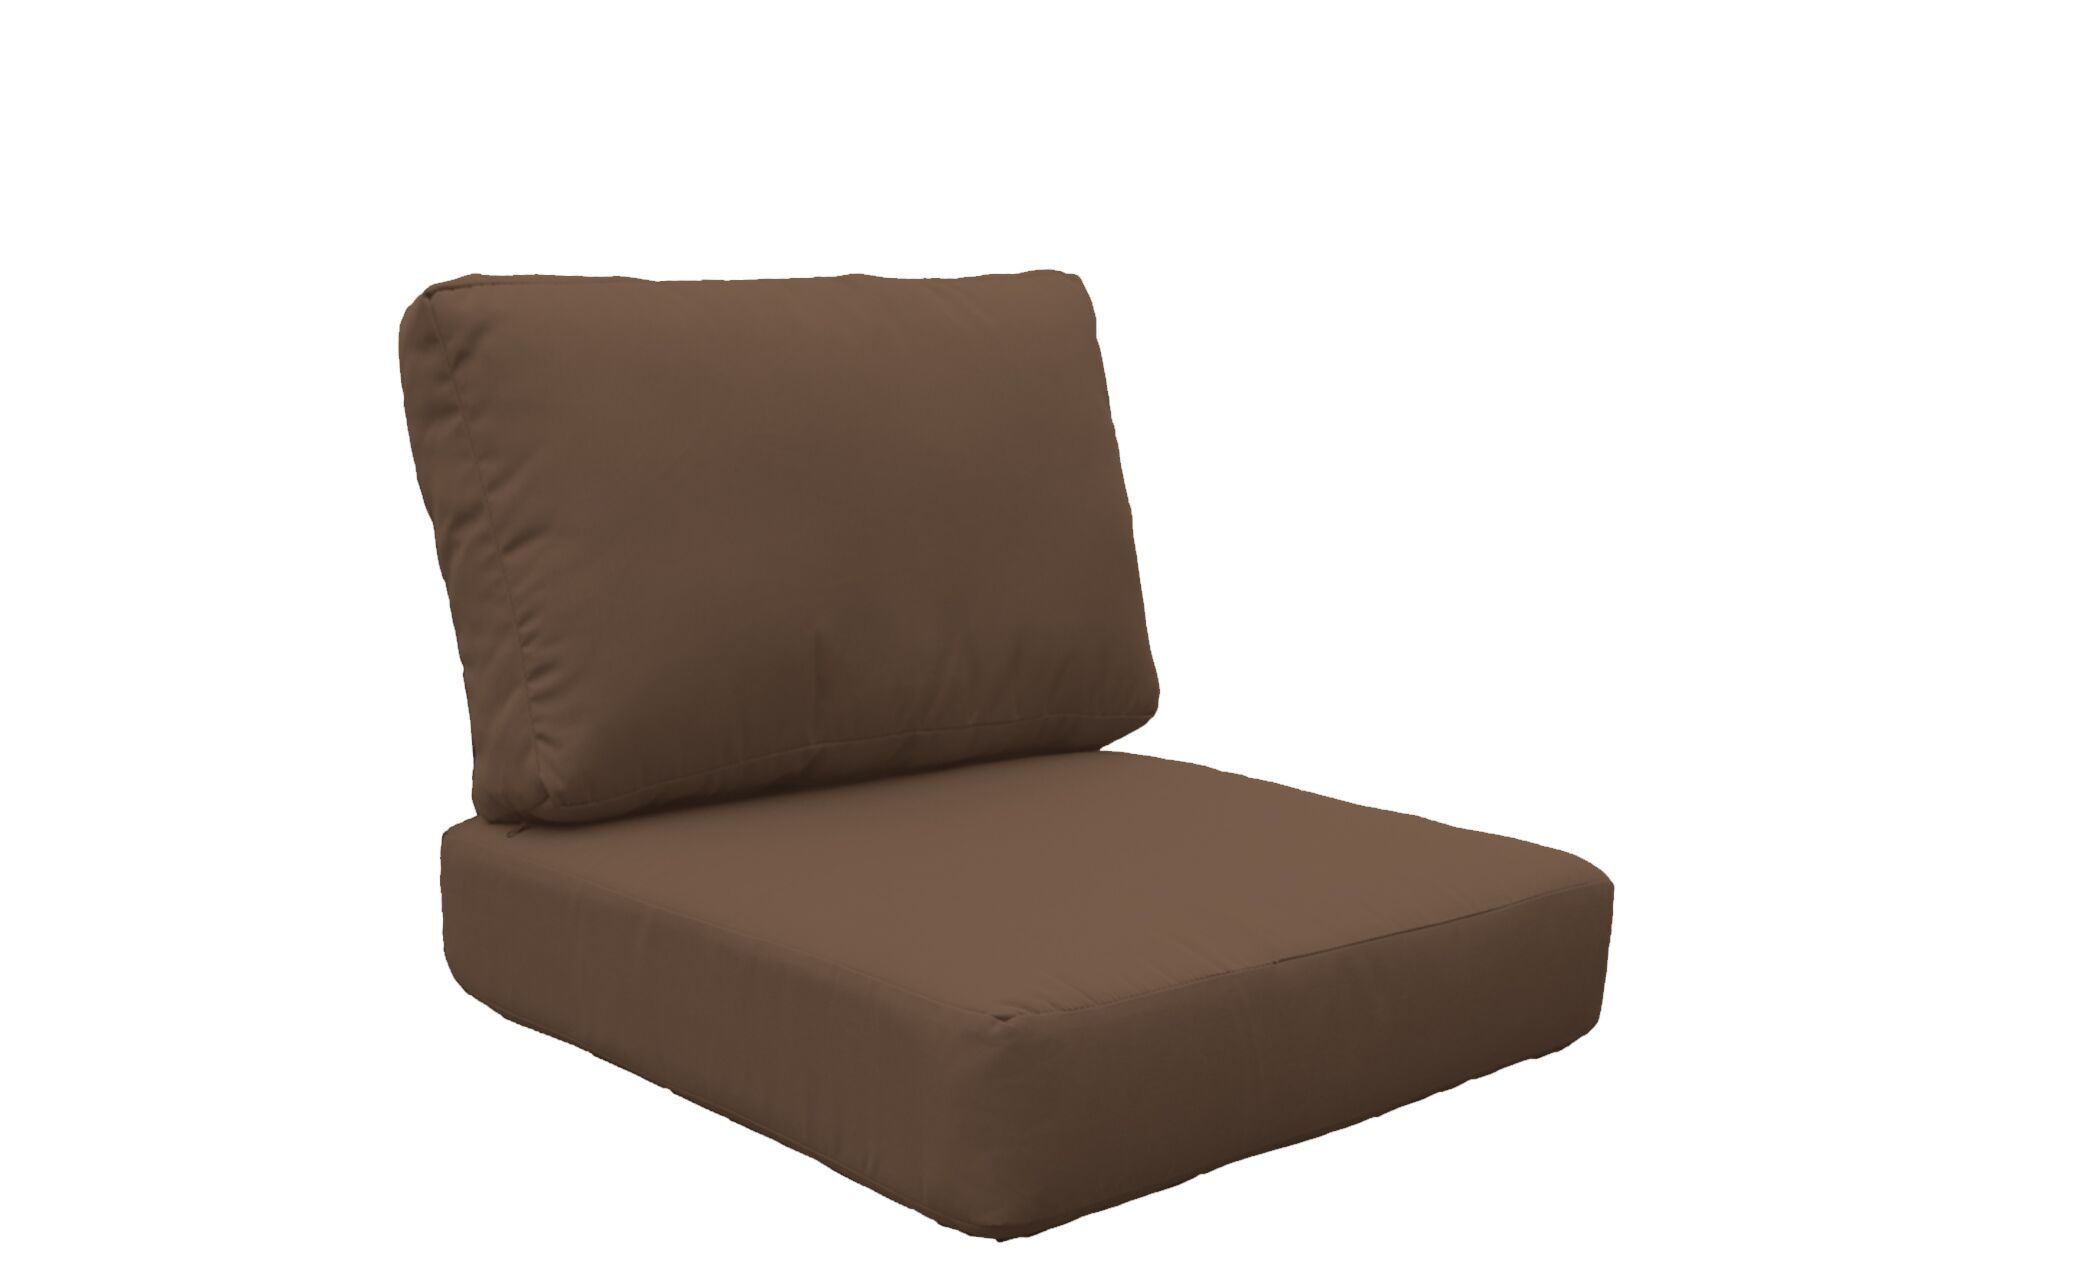 Coast 10 Piece Outdoor�Lounge Chair Cushion Set Fabric: Cocoa